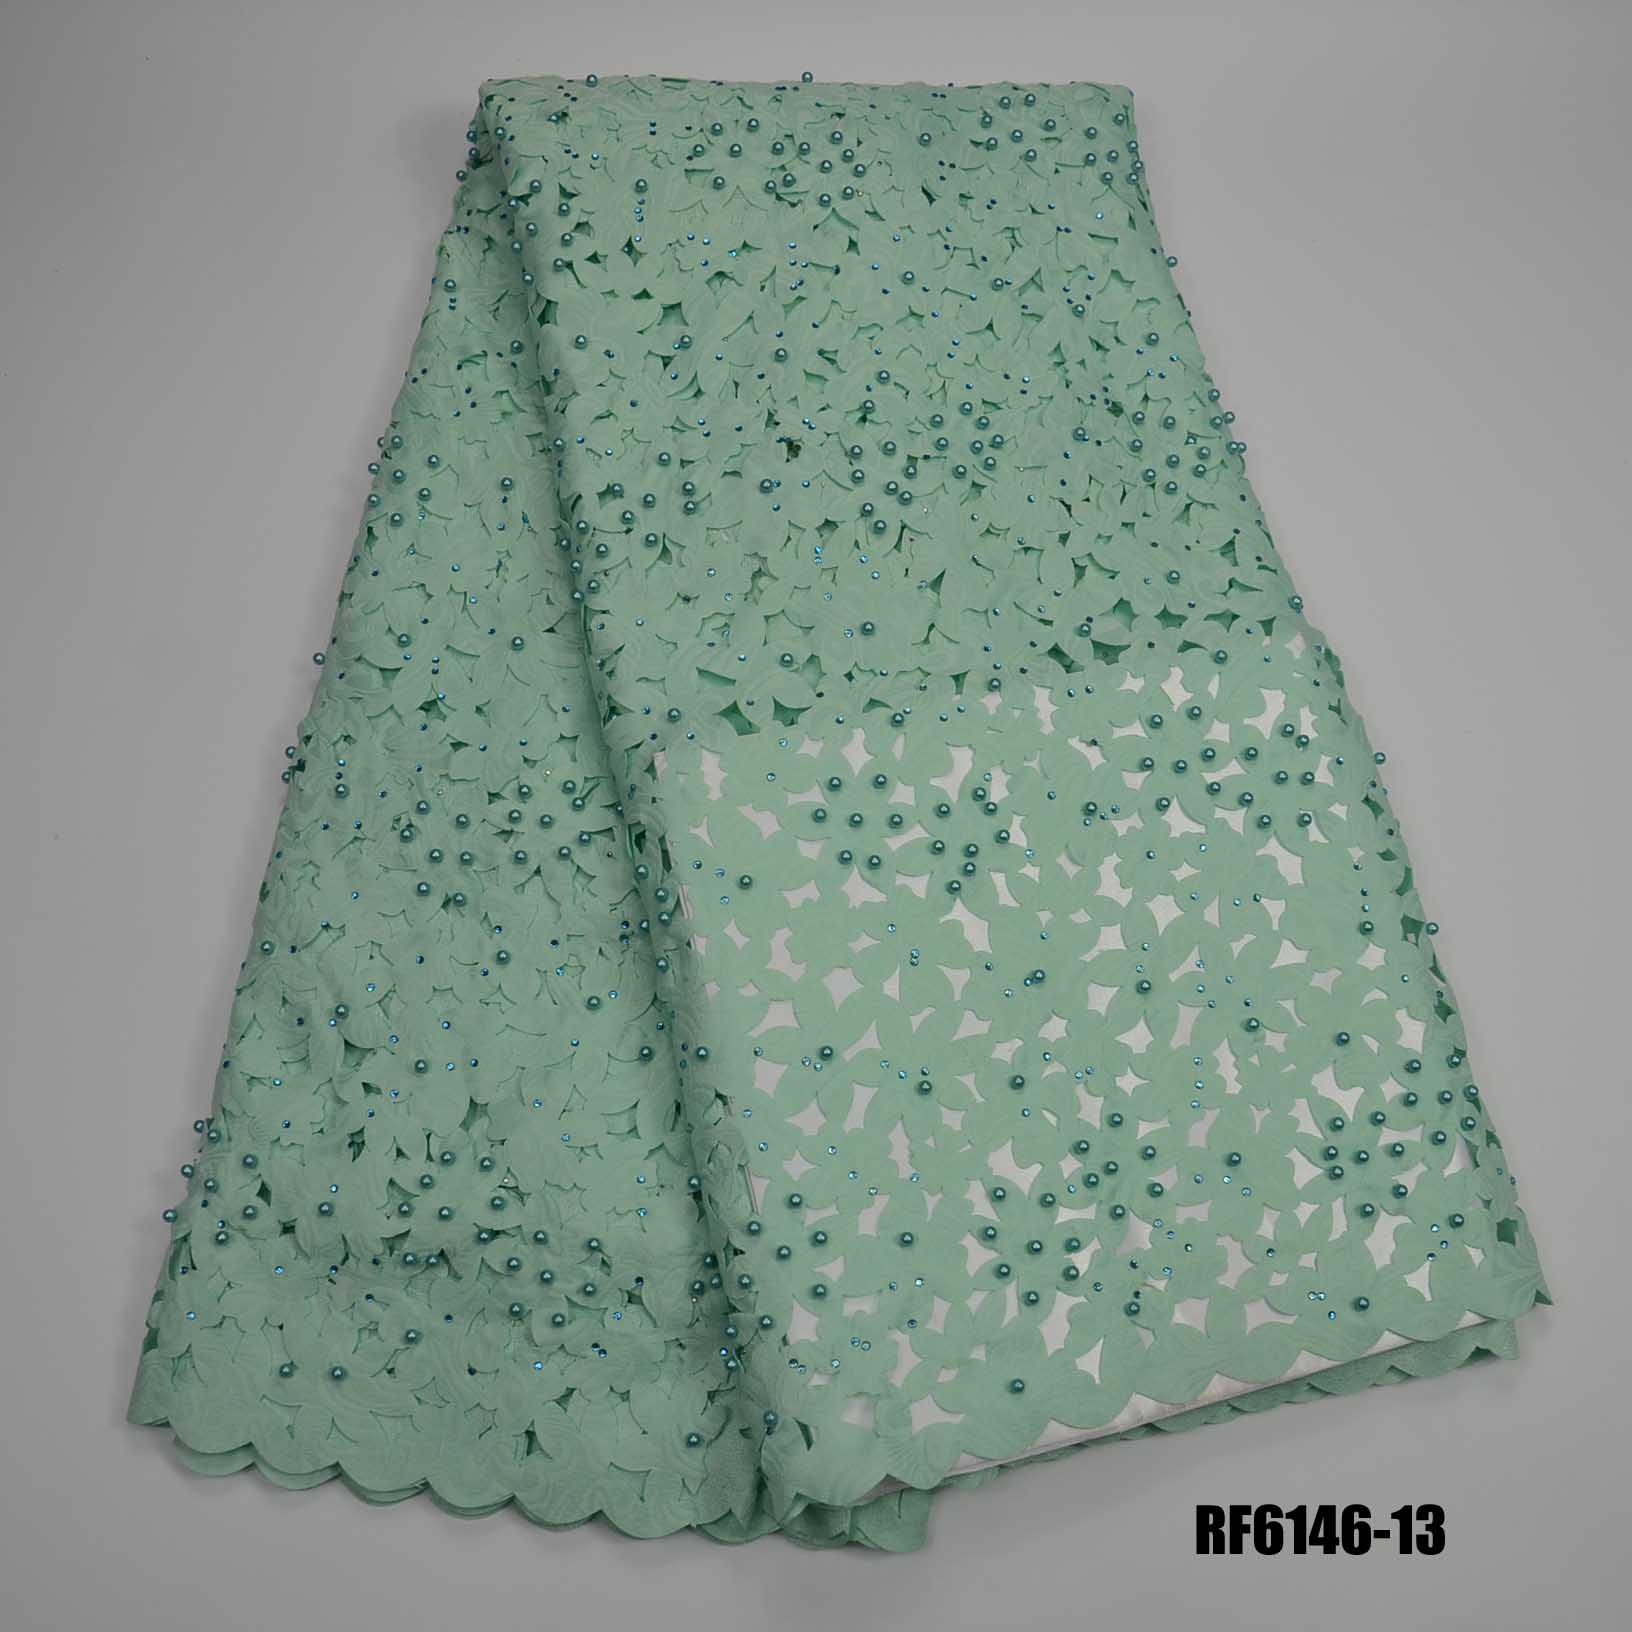 Wholeseprice Laser cut lace beaded customized laser cutting fabric cotton with pearls rhinestone